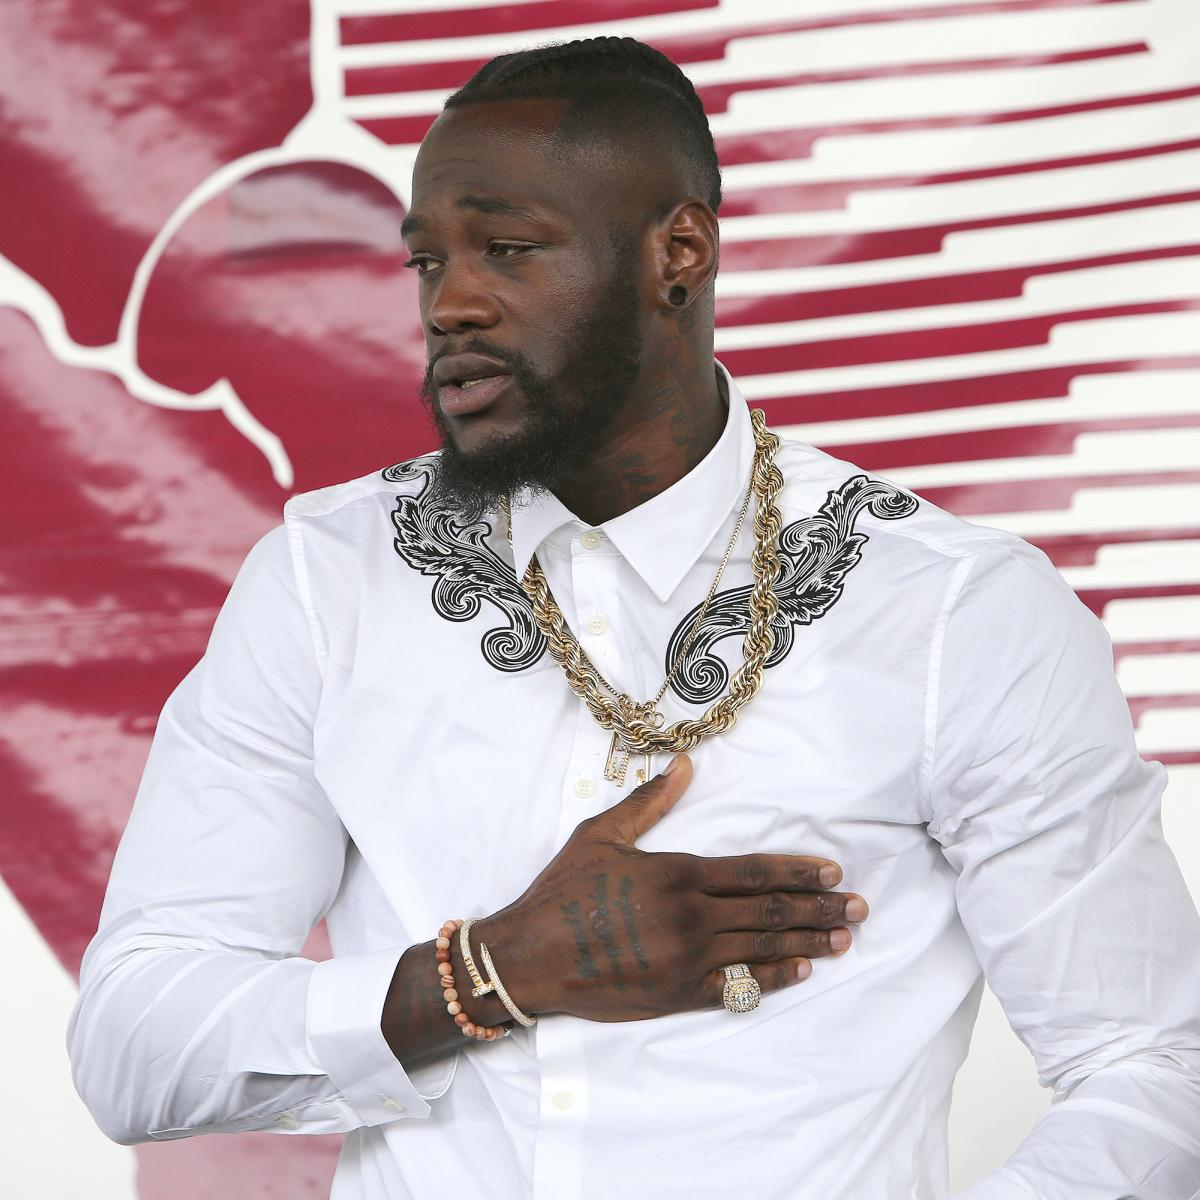 Deontay Wilder Hit By Pint Of Beer Ringside At Tyson Fury